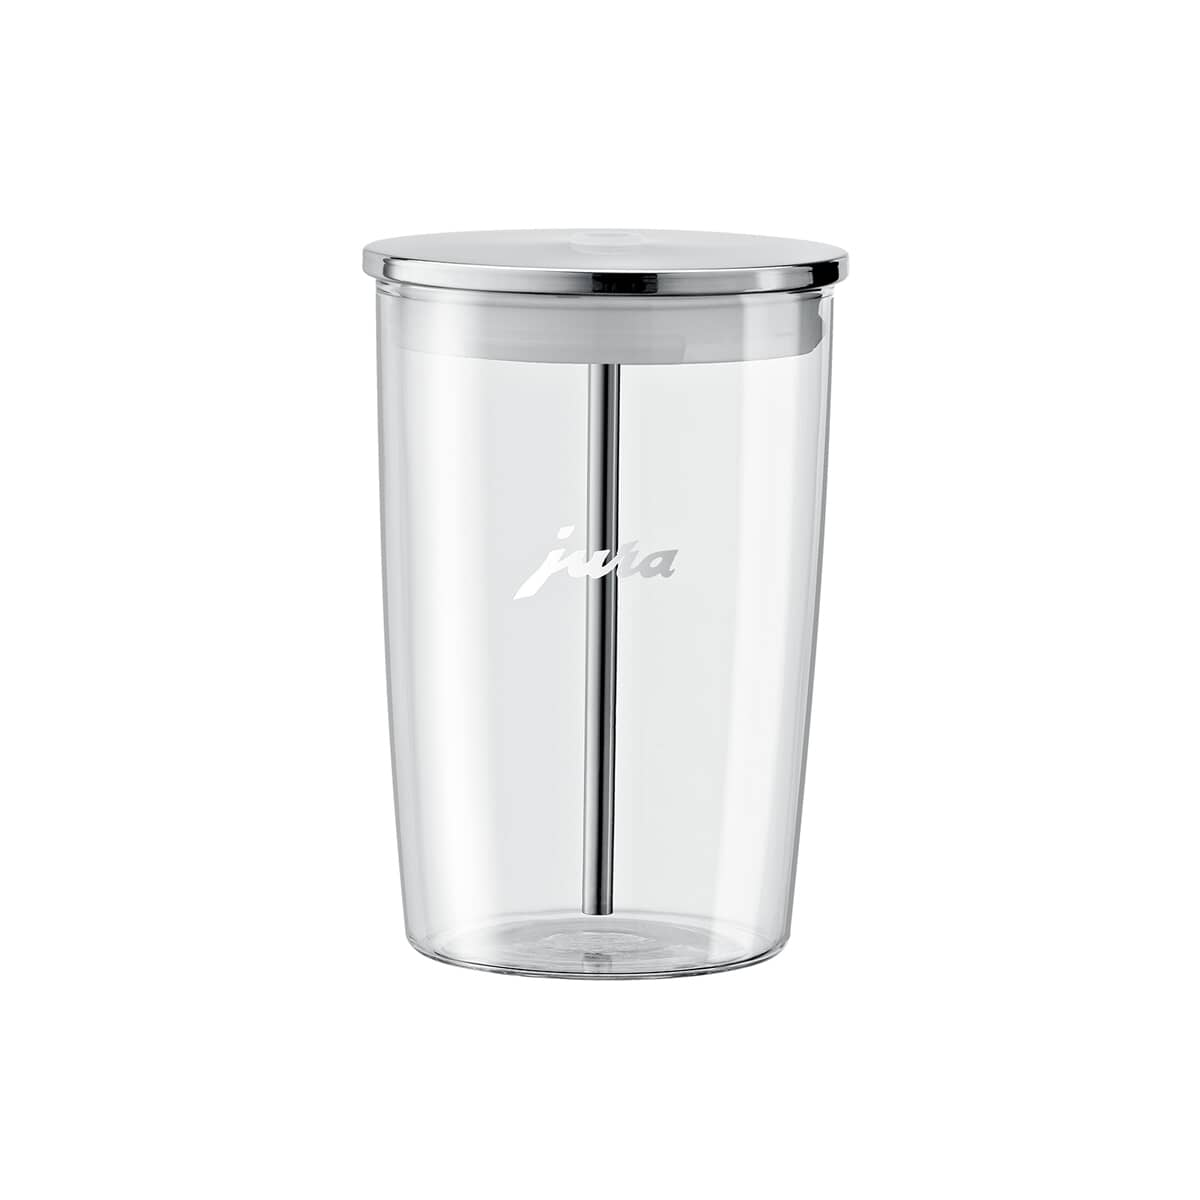 Jura Stainless Steel Milk Container 0.4l